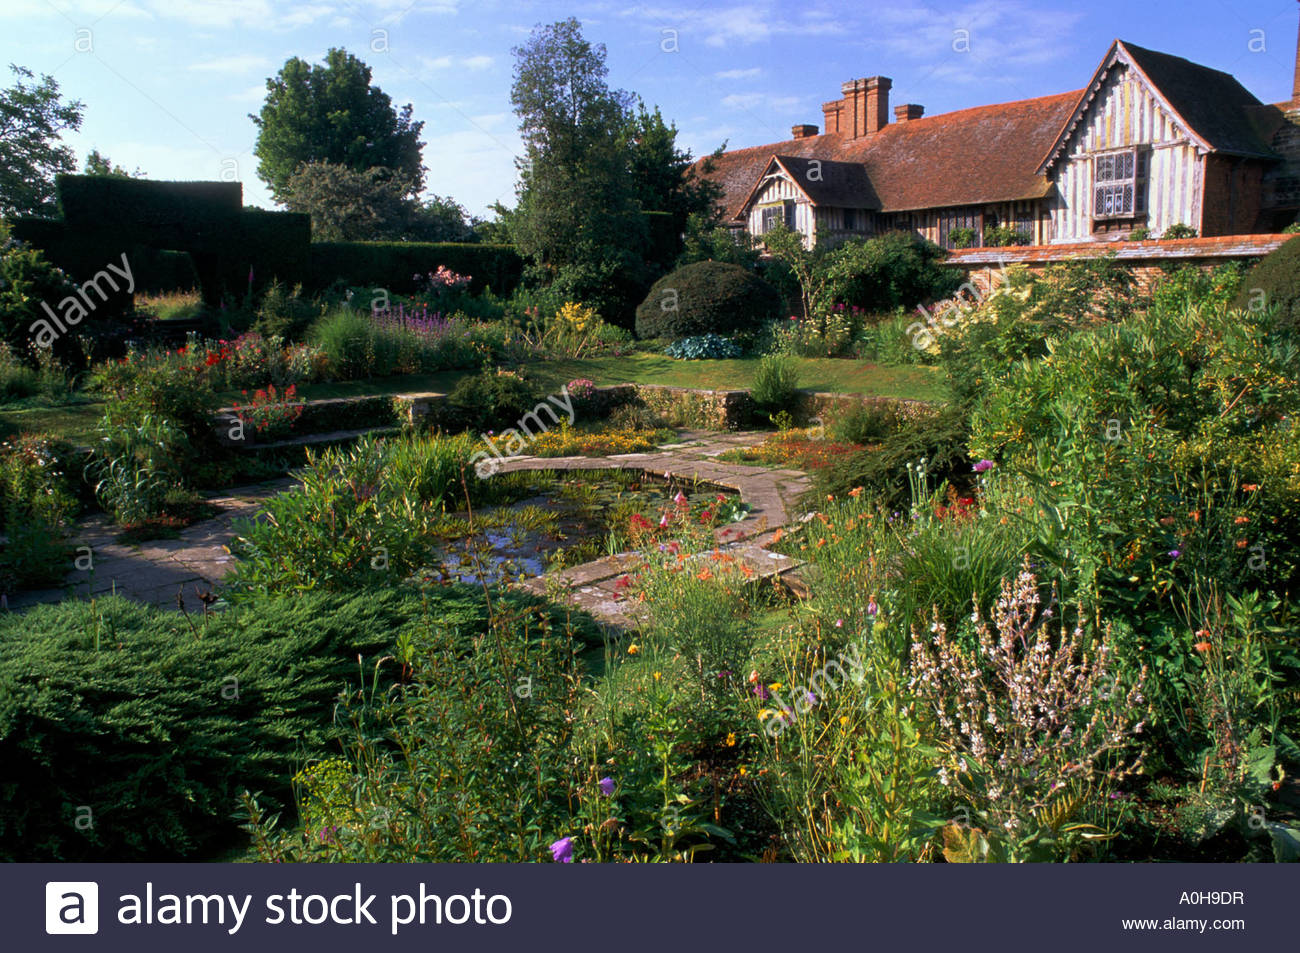 Pleasing Great Dixter Sussex Formal Pond In The Sunken Garden With View Of  With Hot Great Dixter Sussex Formal Pond In The Sunken Garden With View Of House With Beautiful Garden Furniture John Lewis Also Jade Garden Knaresborough In Addition Iron Garden Urns And Botanical Gardens Sheffield Events As Well As Garden Gates Wood Additionally Nursery And Garden Industry From Alamycom With   Hot Great Dixter Sussex Formal Pond In The Sunken Garden With View Of  With Beautiful Great Dixter Sussex Formal Pond In The Sunken Garden With View Of House And Pleasing Garden Furniture John Lewis Also Jade Garden Knaresborough In Addition Iron Garden Urns From Alamycom